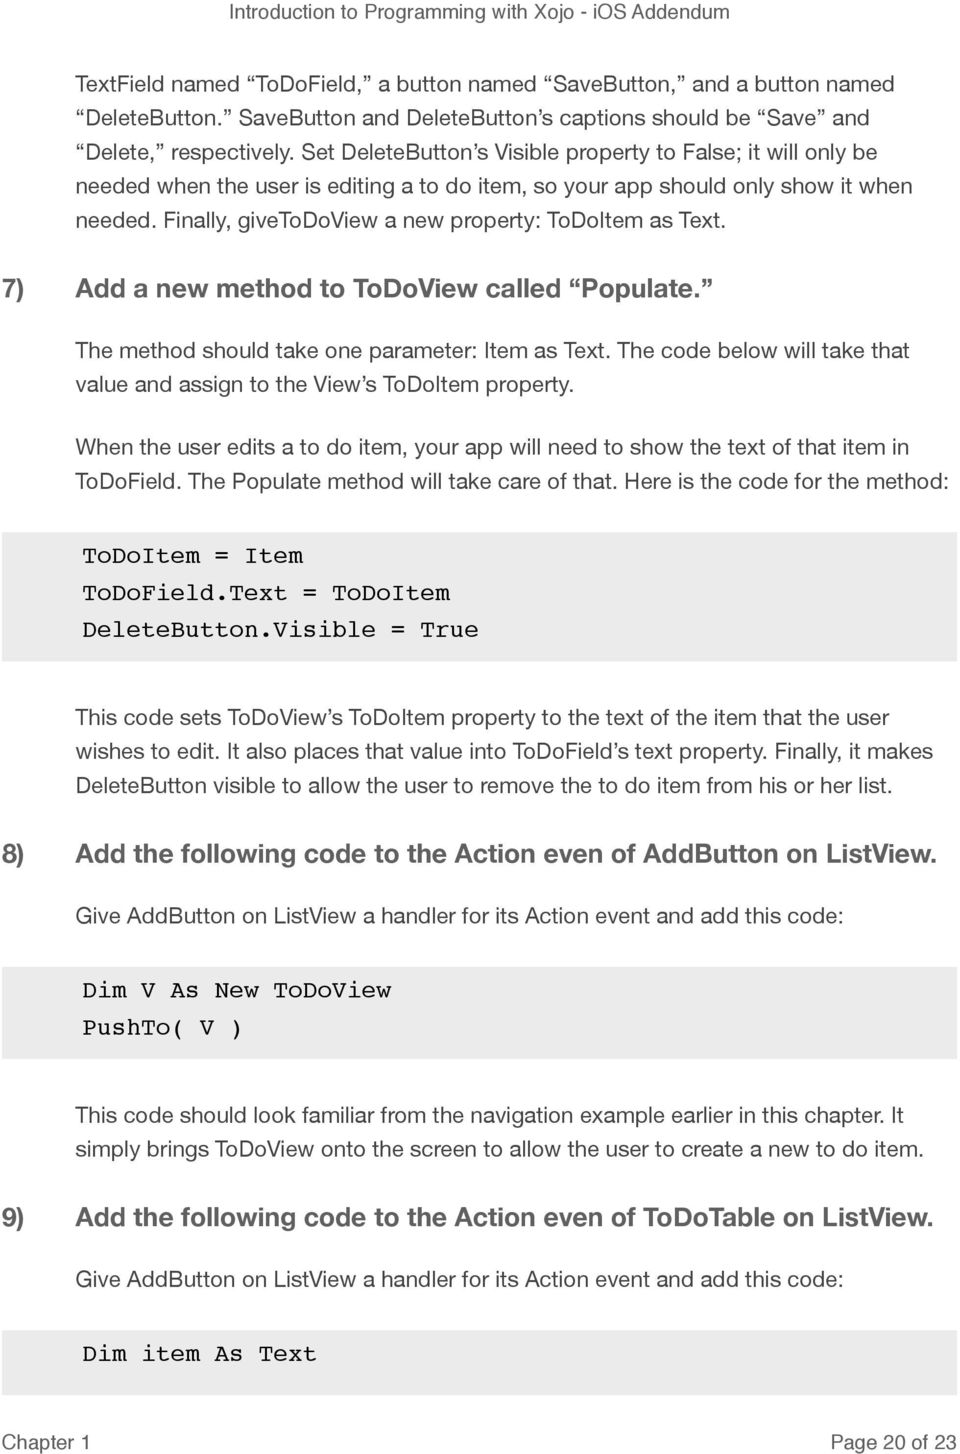 Finally, givetodoview a new property: ToDoItem as Text. 7) Add a new method to ToDoView called Populate. The method should take one parameter: Item as Text.